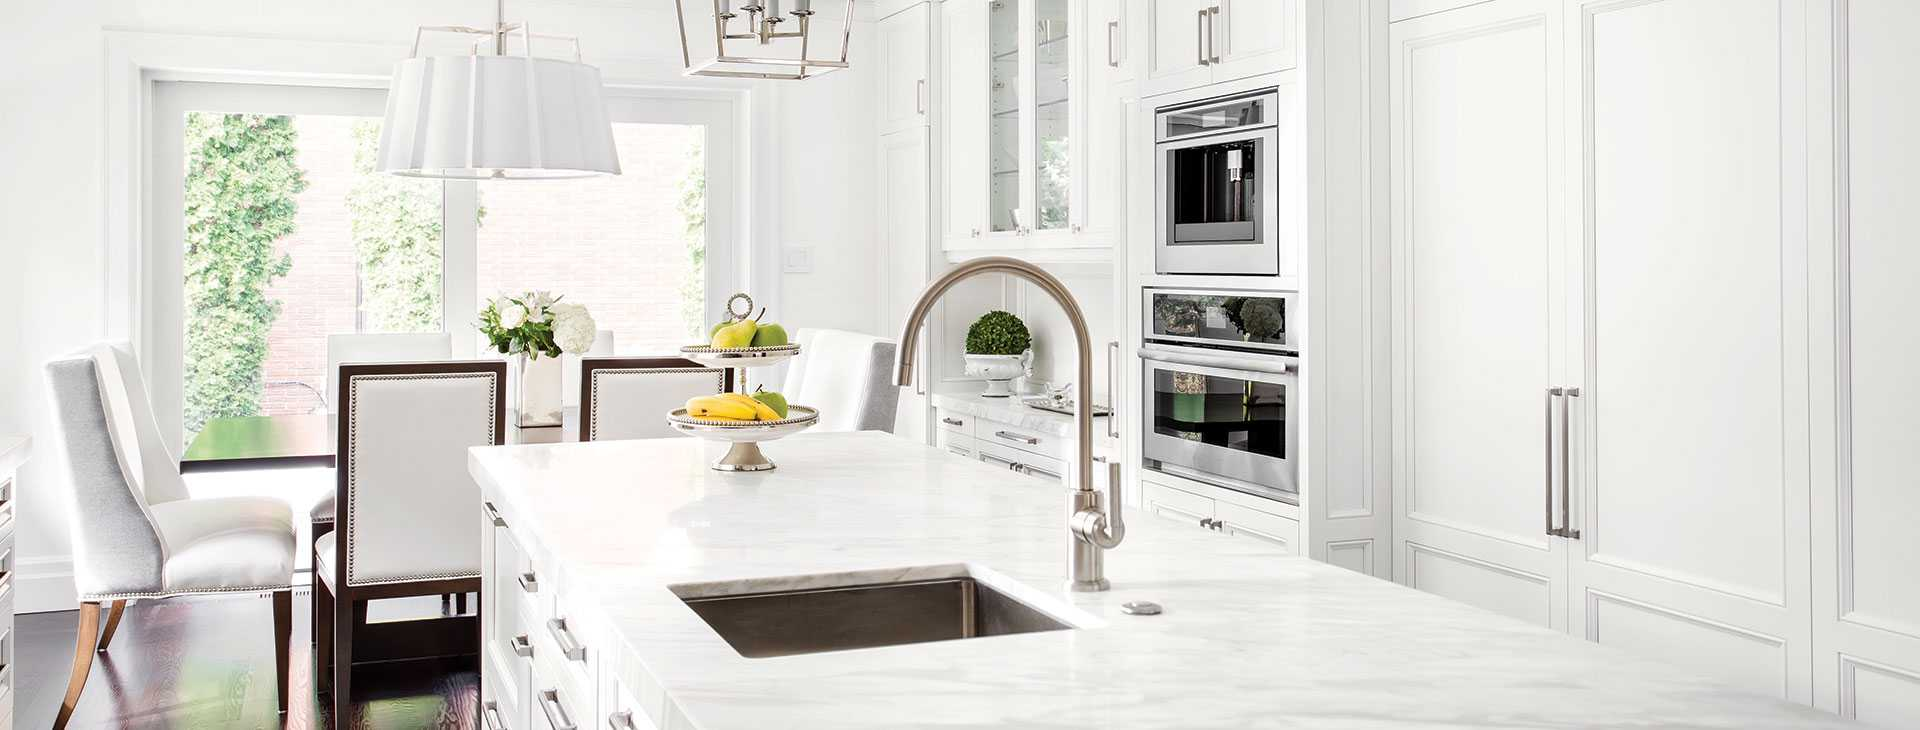 Open-plan kitchen redesign, with accents of silver hardware and refined white stone bench top